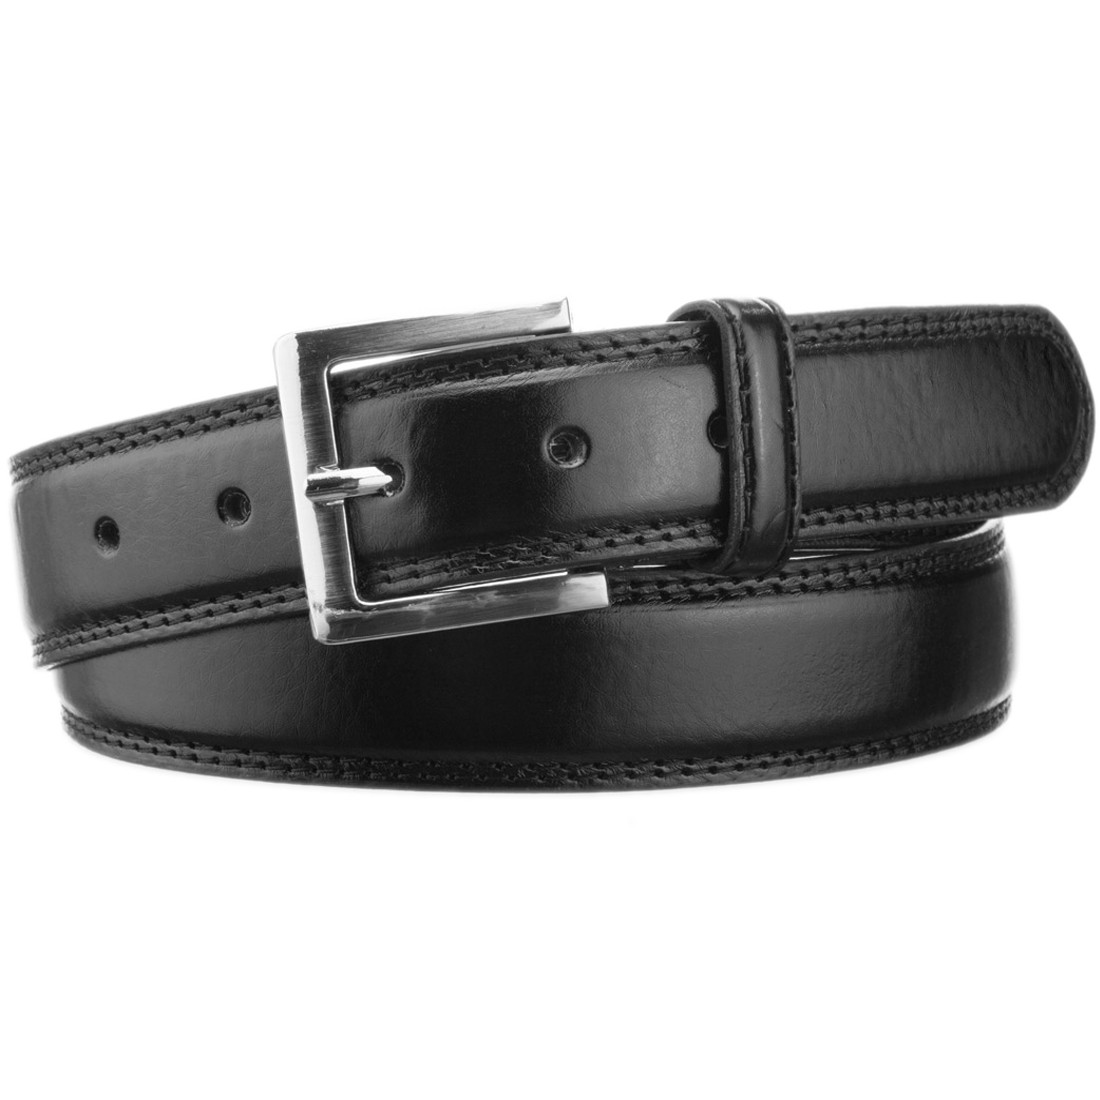 herren g rtel jeans g rtel schwarz braun anzug belt ebay. Black Bedroom Furniture Sets. Home Design Ideas